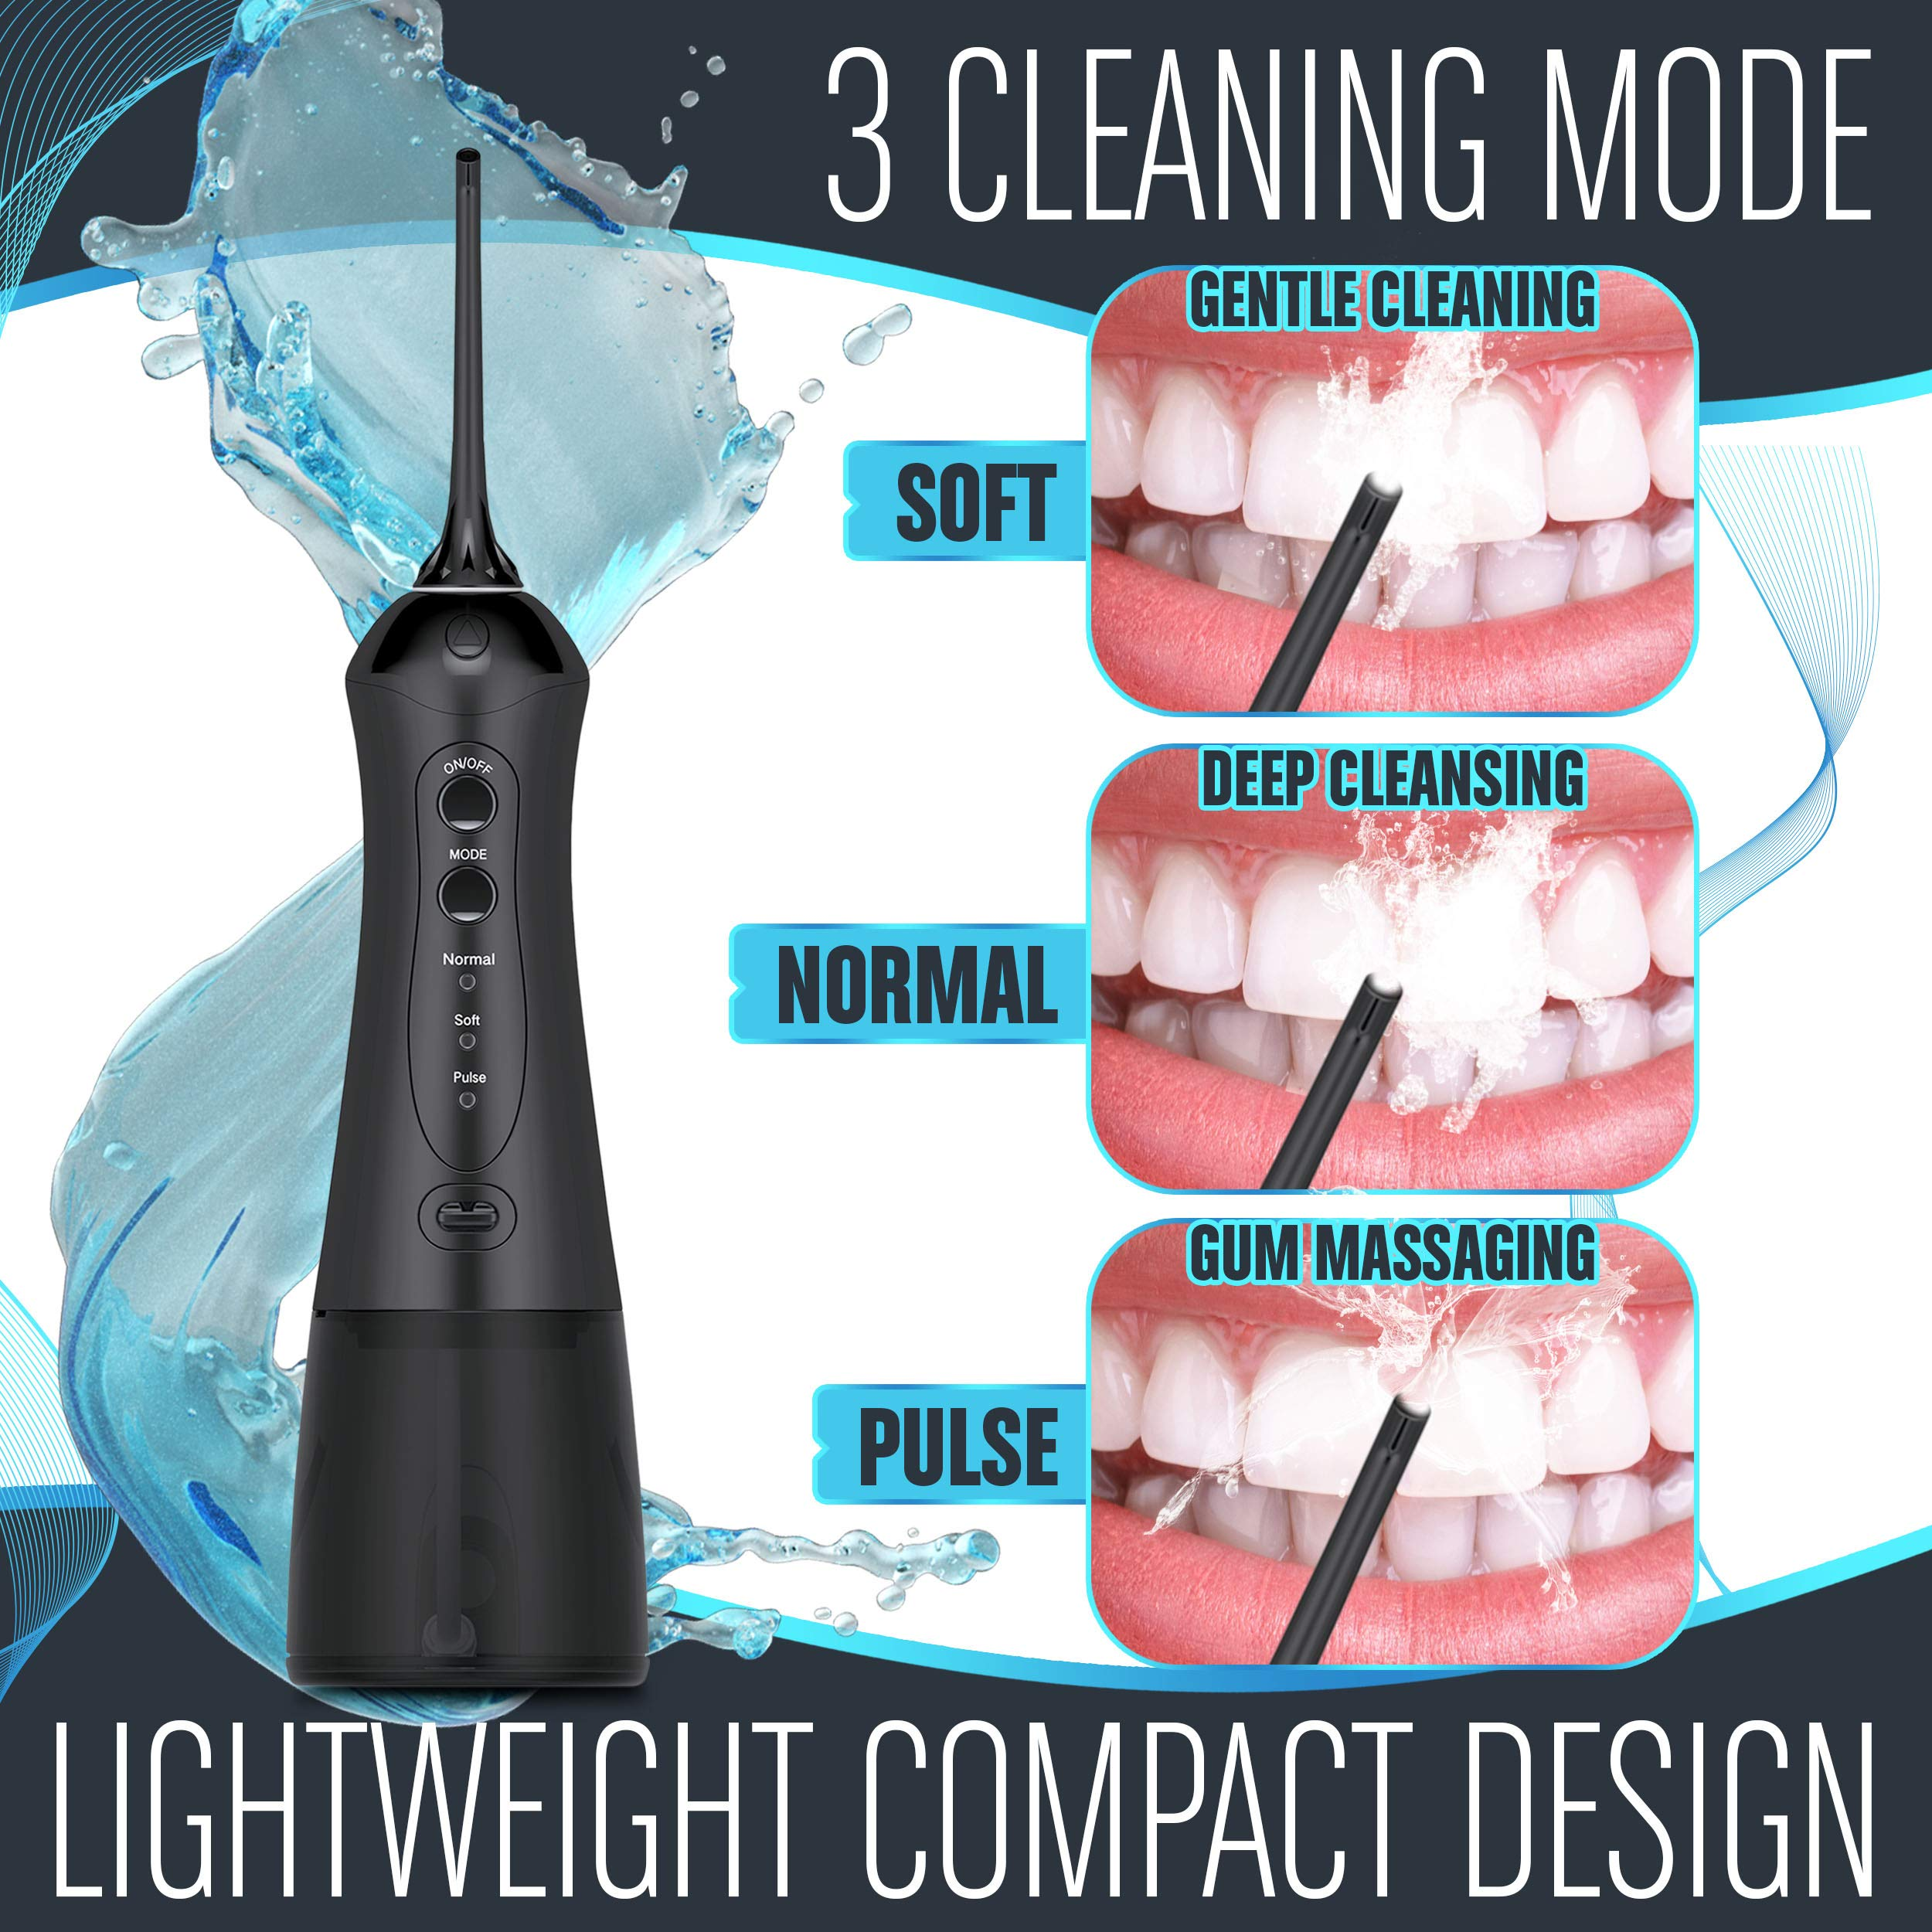 Cordless Water Flosser for Teeth - Smile Brighter with a Portable Waterflosser - Rechargeable Water Flosser/Oral Irrigator with 2 Heads, Travel Case and USB Charger by IDLTD (Image #2)